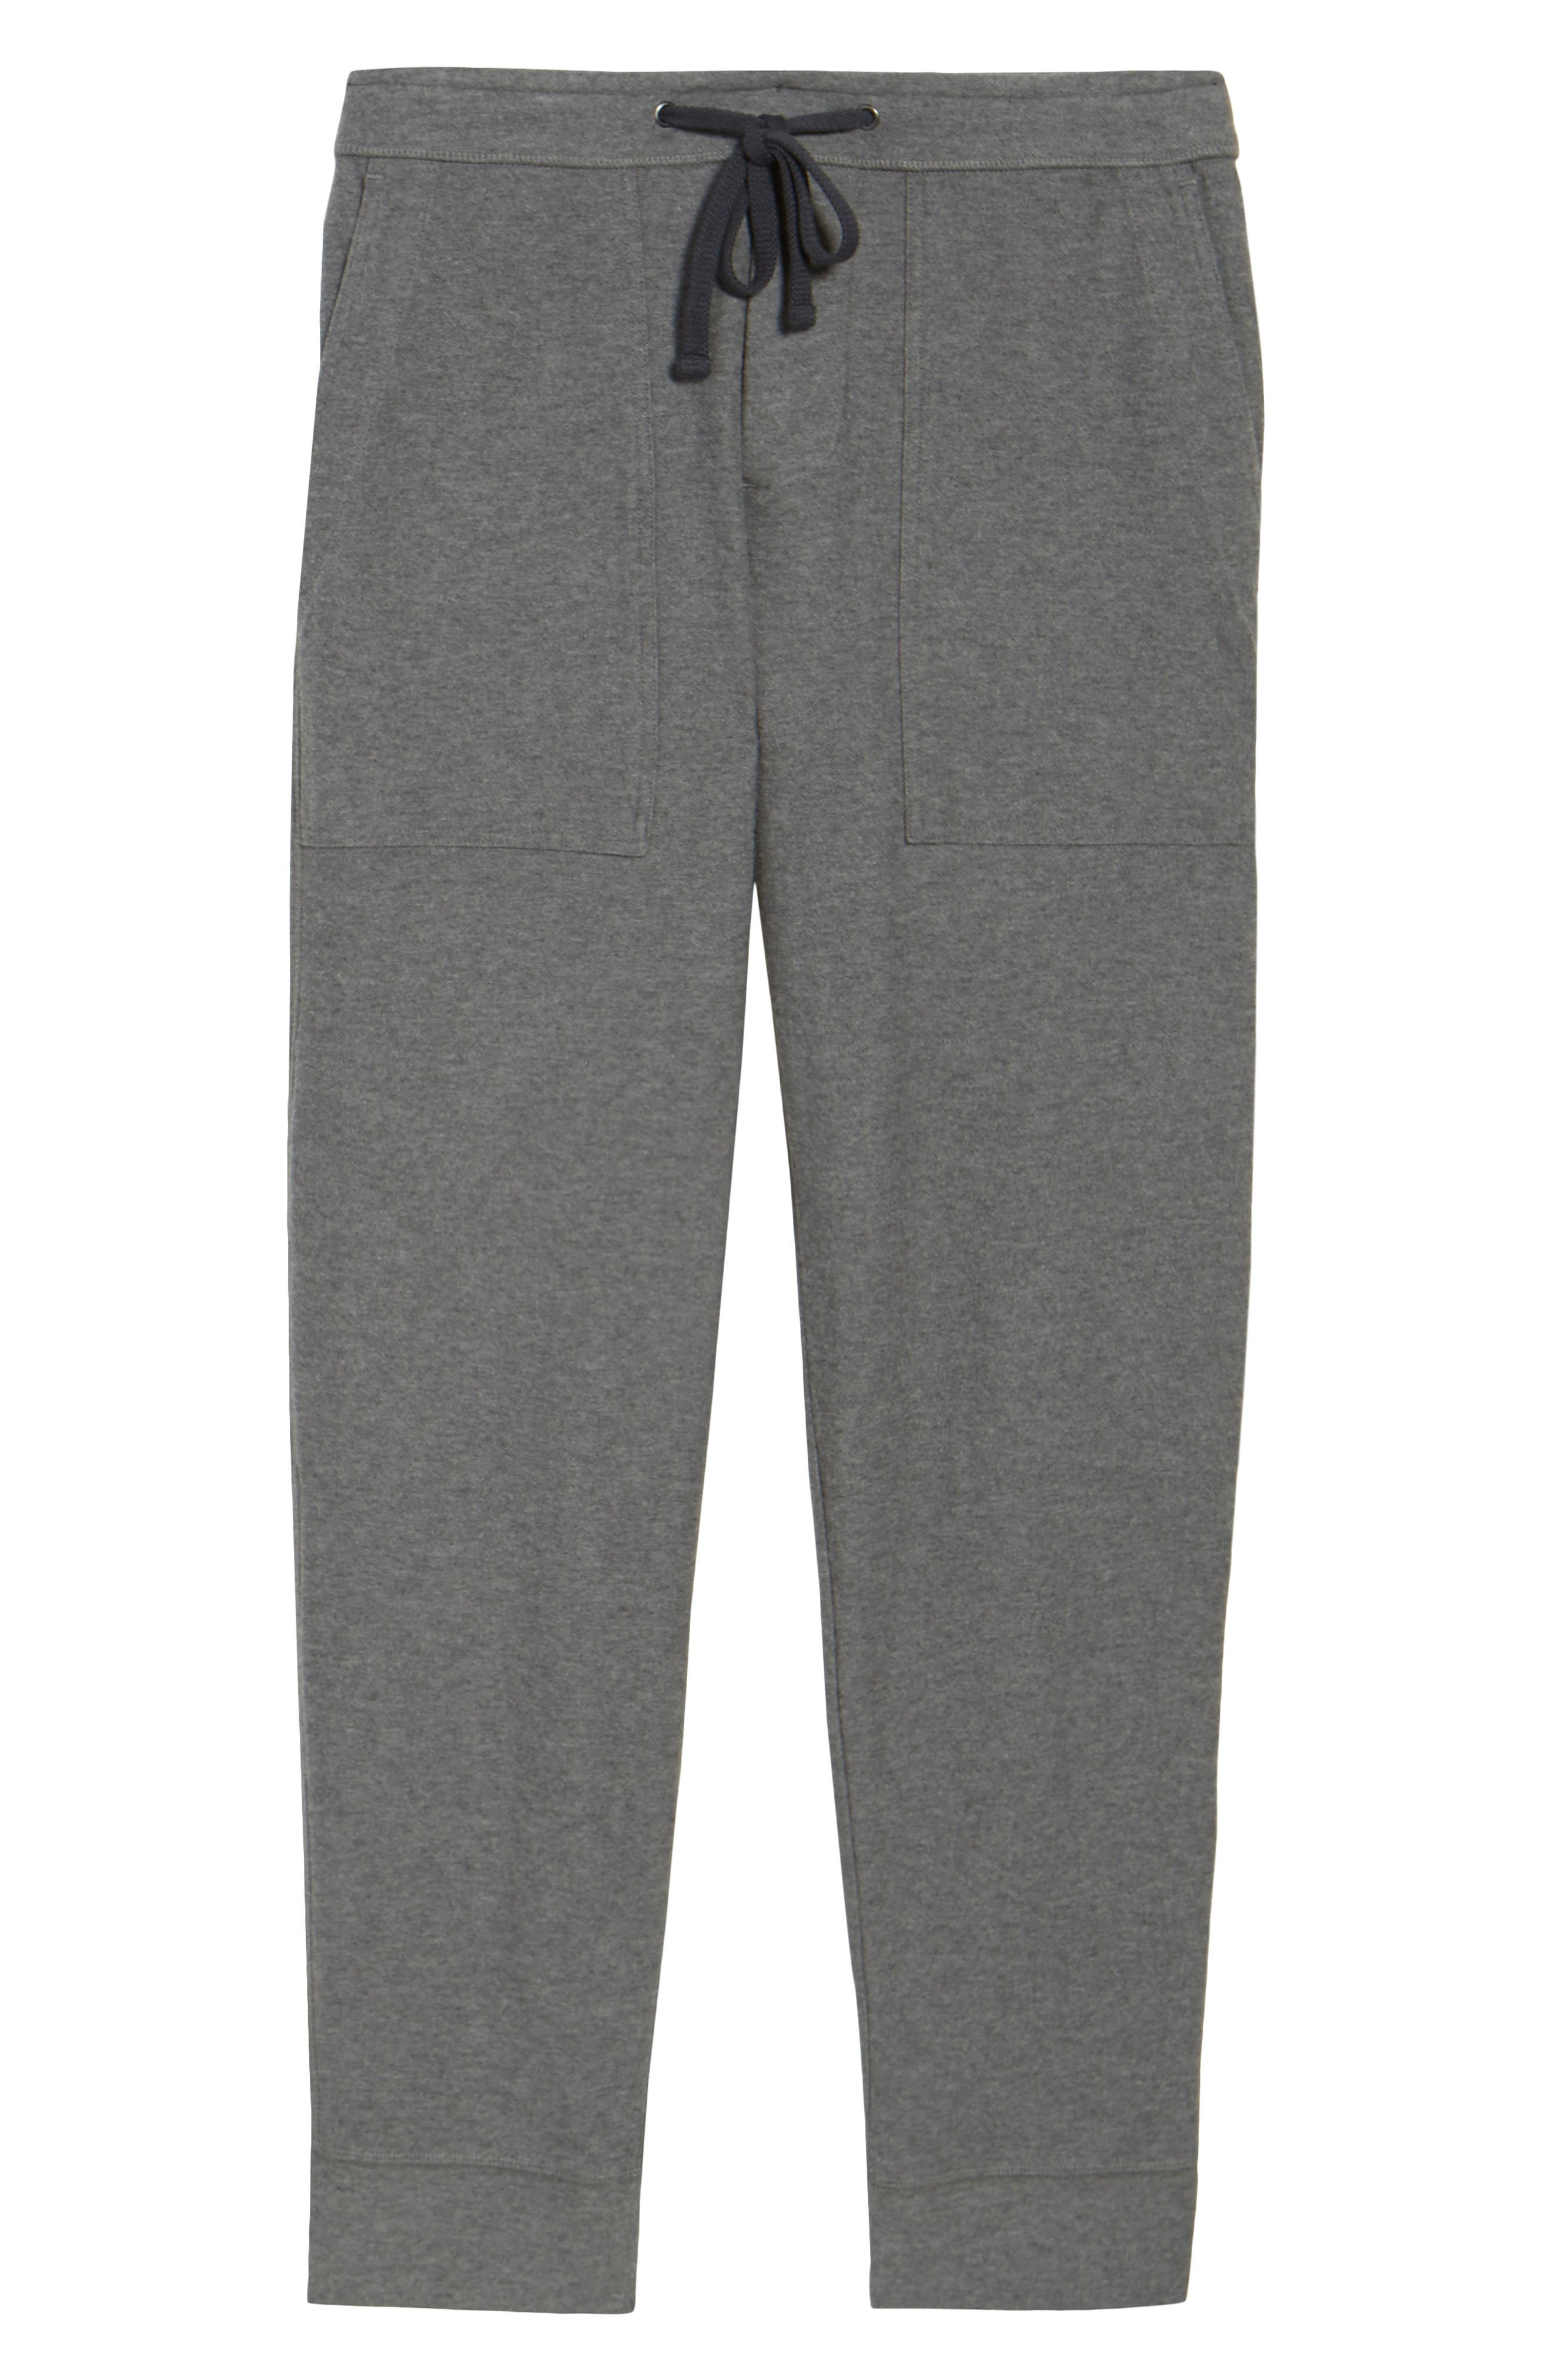 Heathered Knit Lounge Pants,                             Alternate thumbnail 5, color,                             Heather Grey